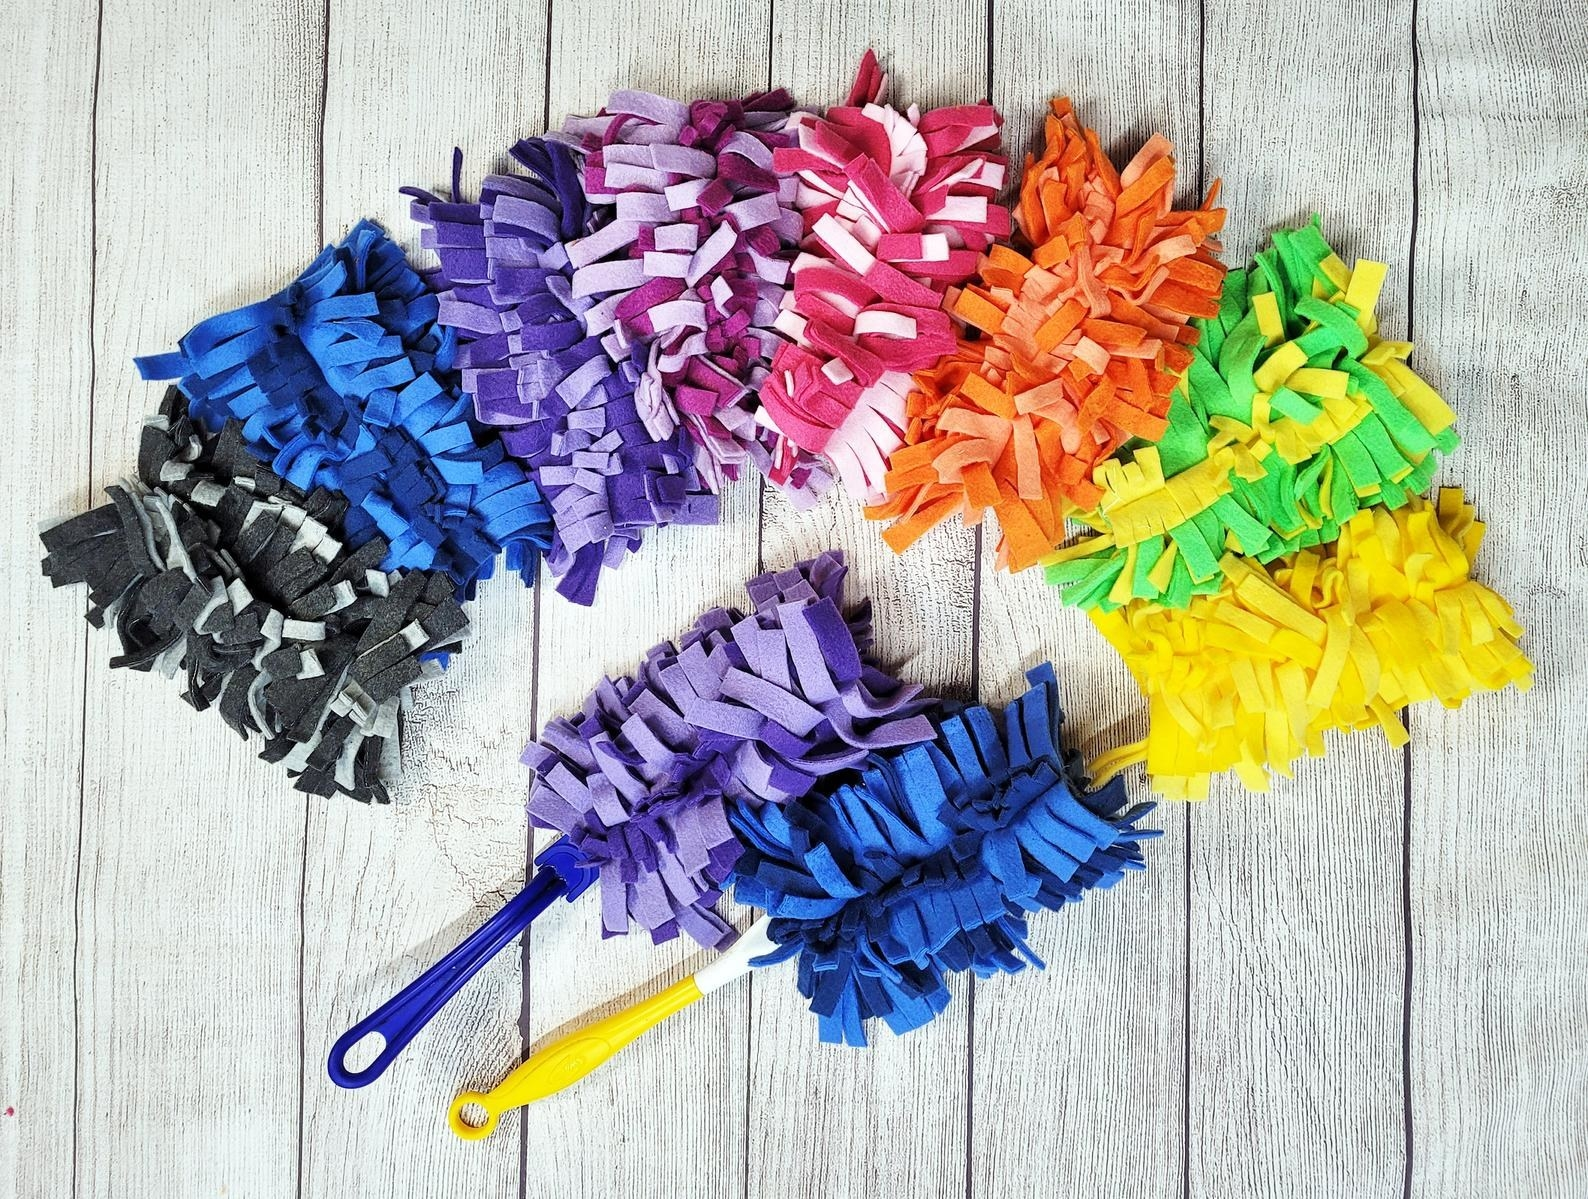 Set of reusable Swiffer dusters in various colors